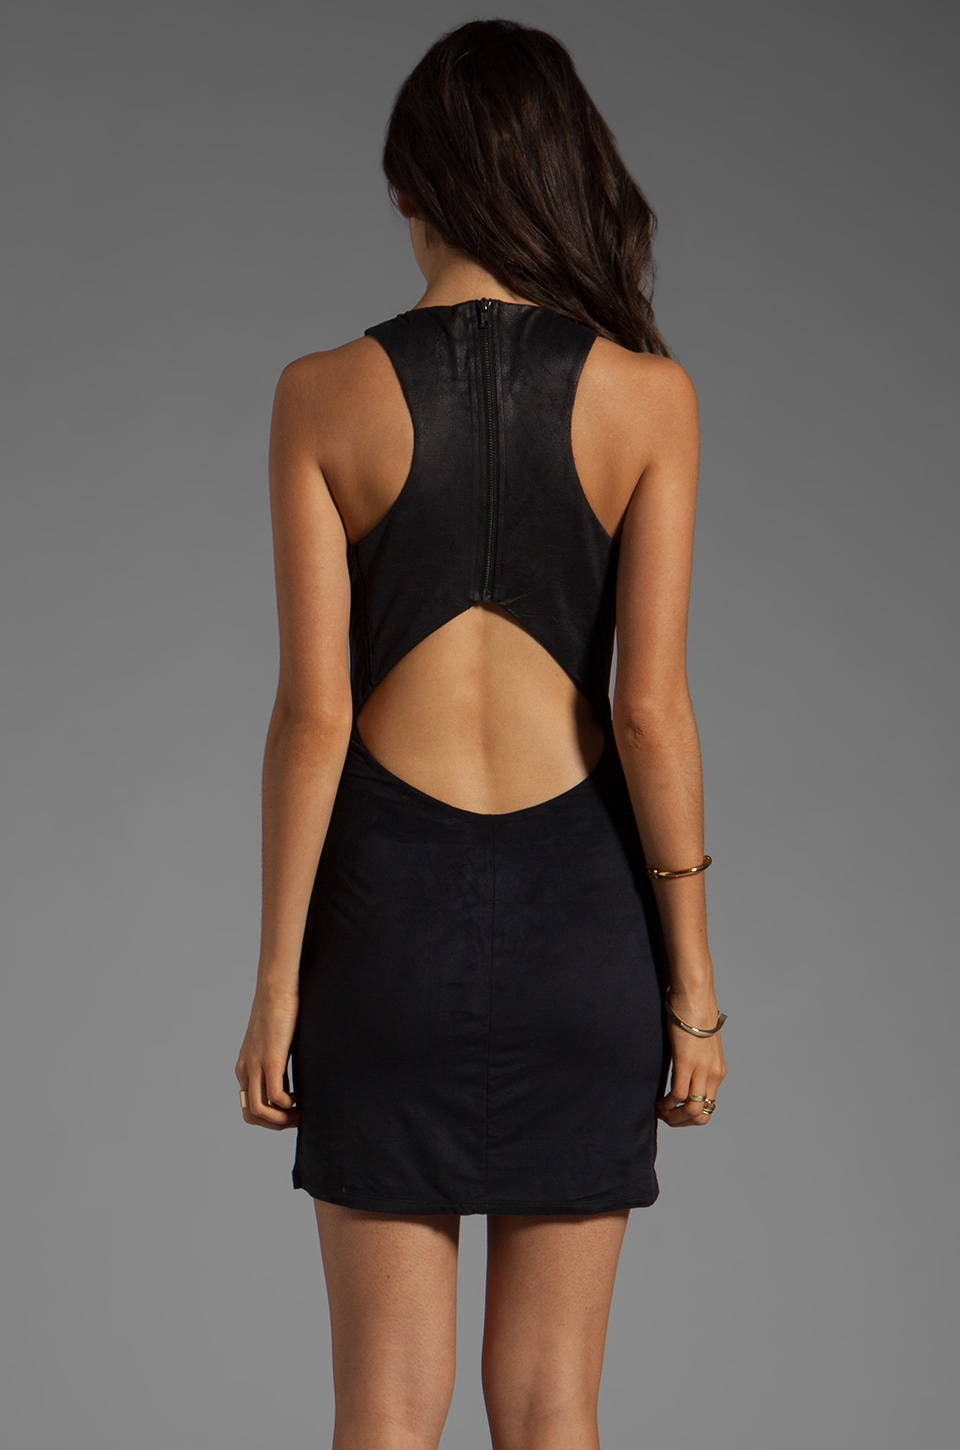 Ladakh Bulletproof Dress in Black